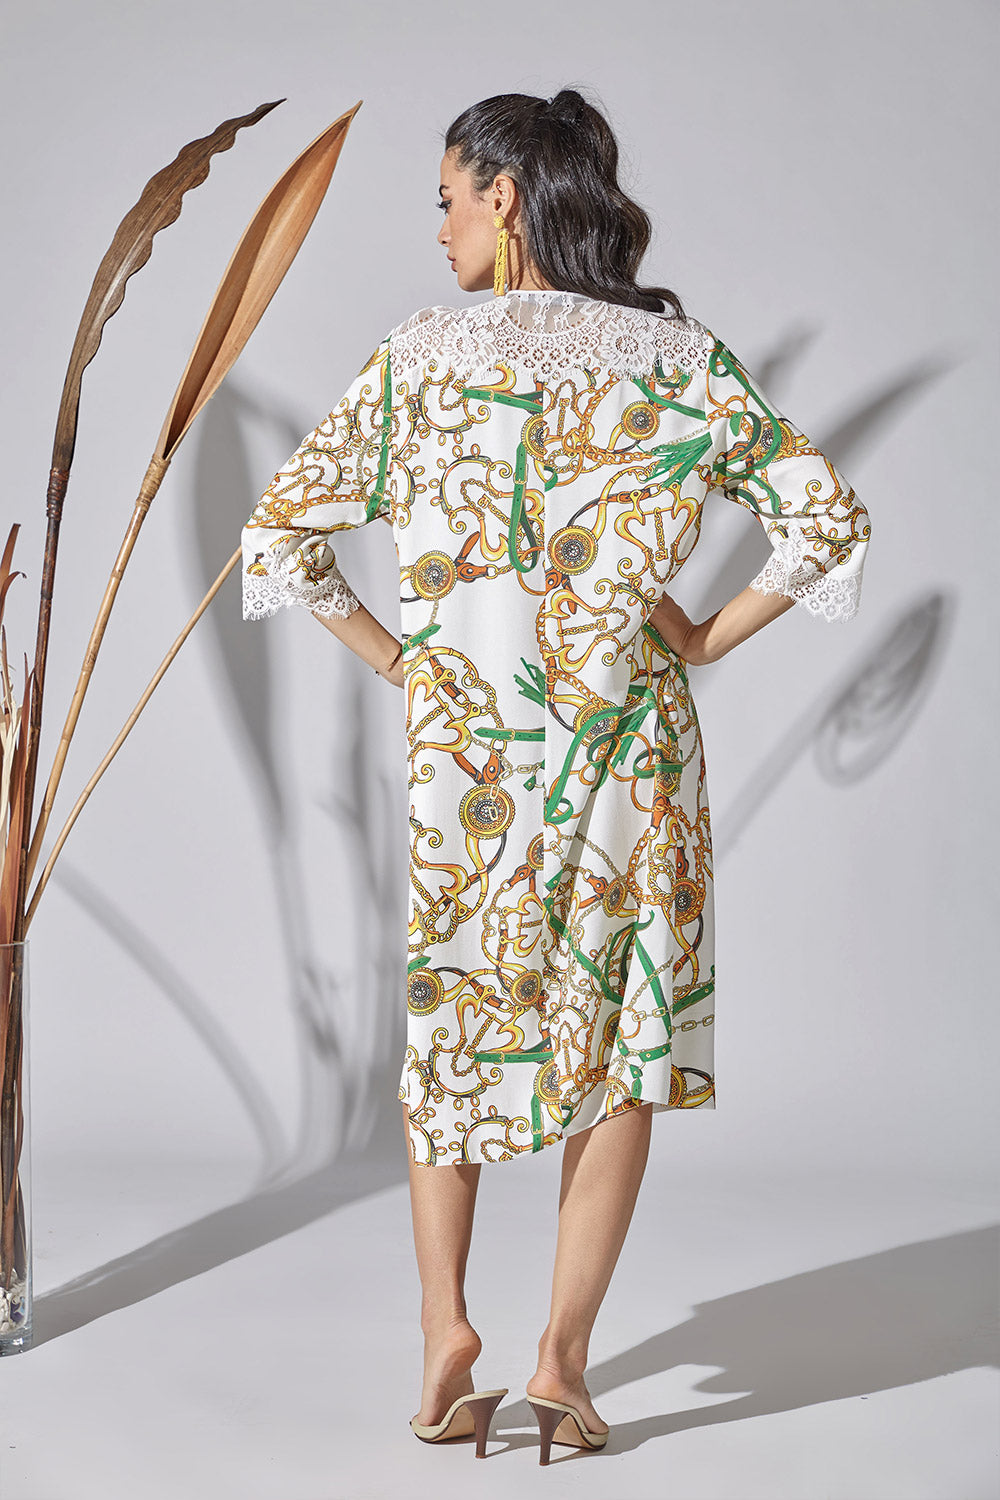 Trimmed Printed Rayon Dress - Unchain Your Hearth